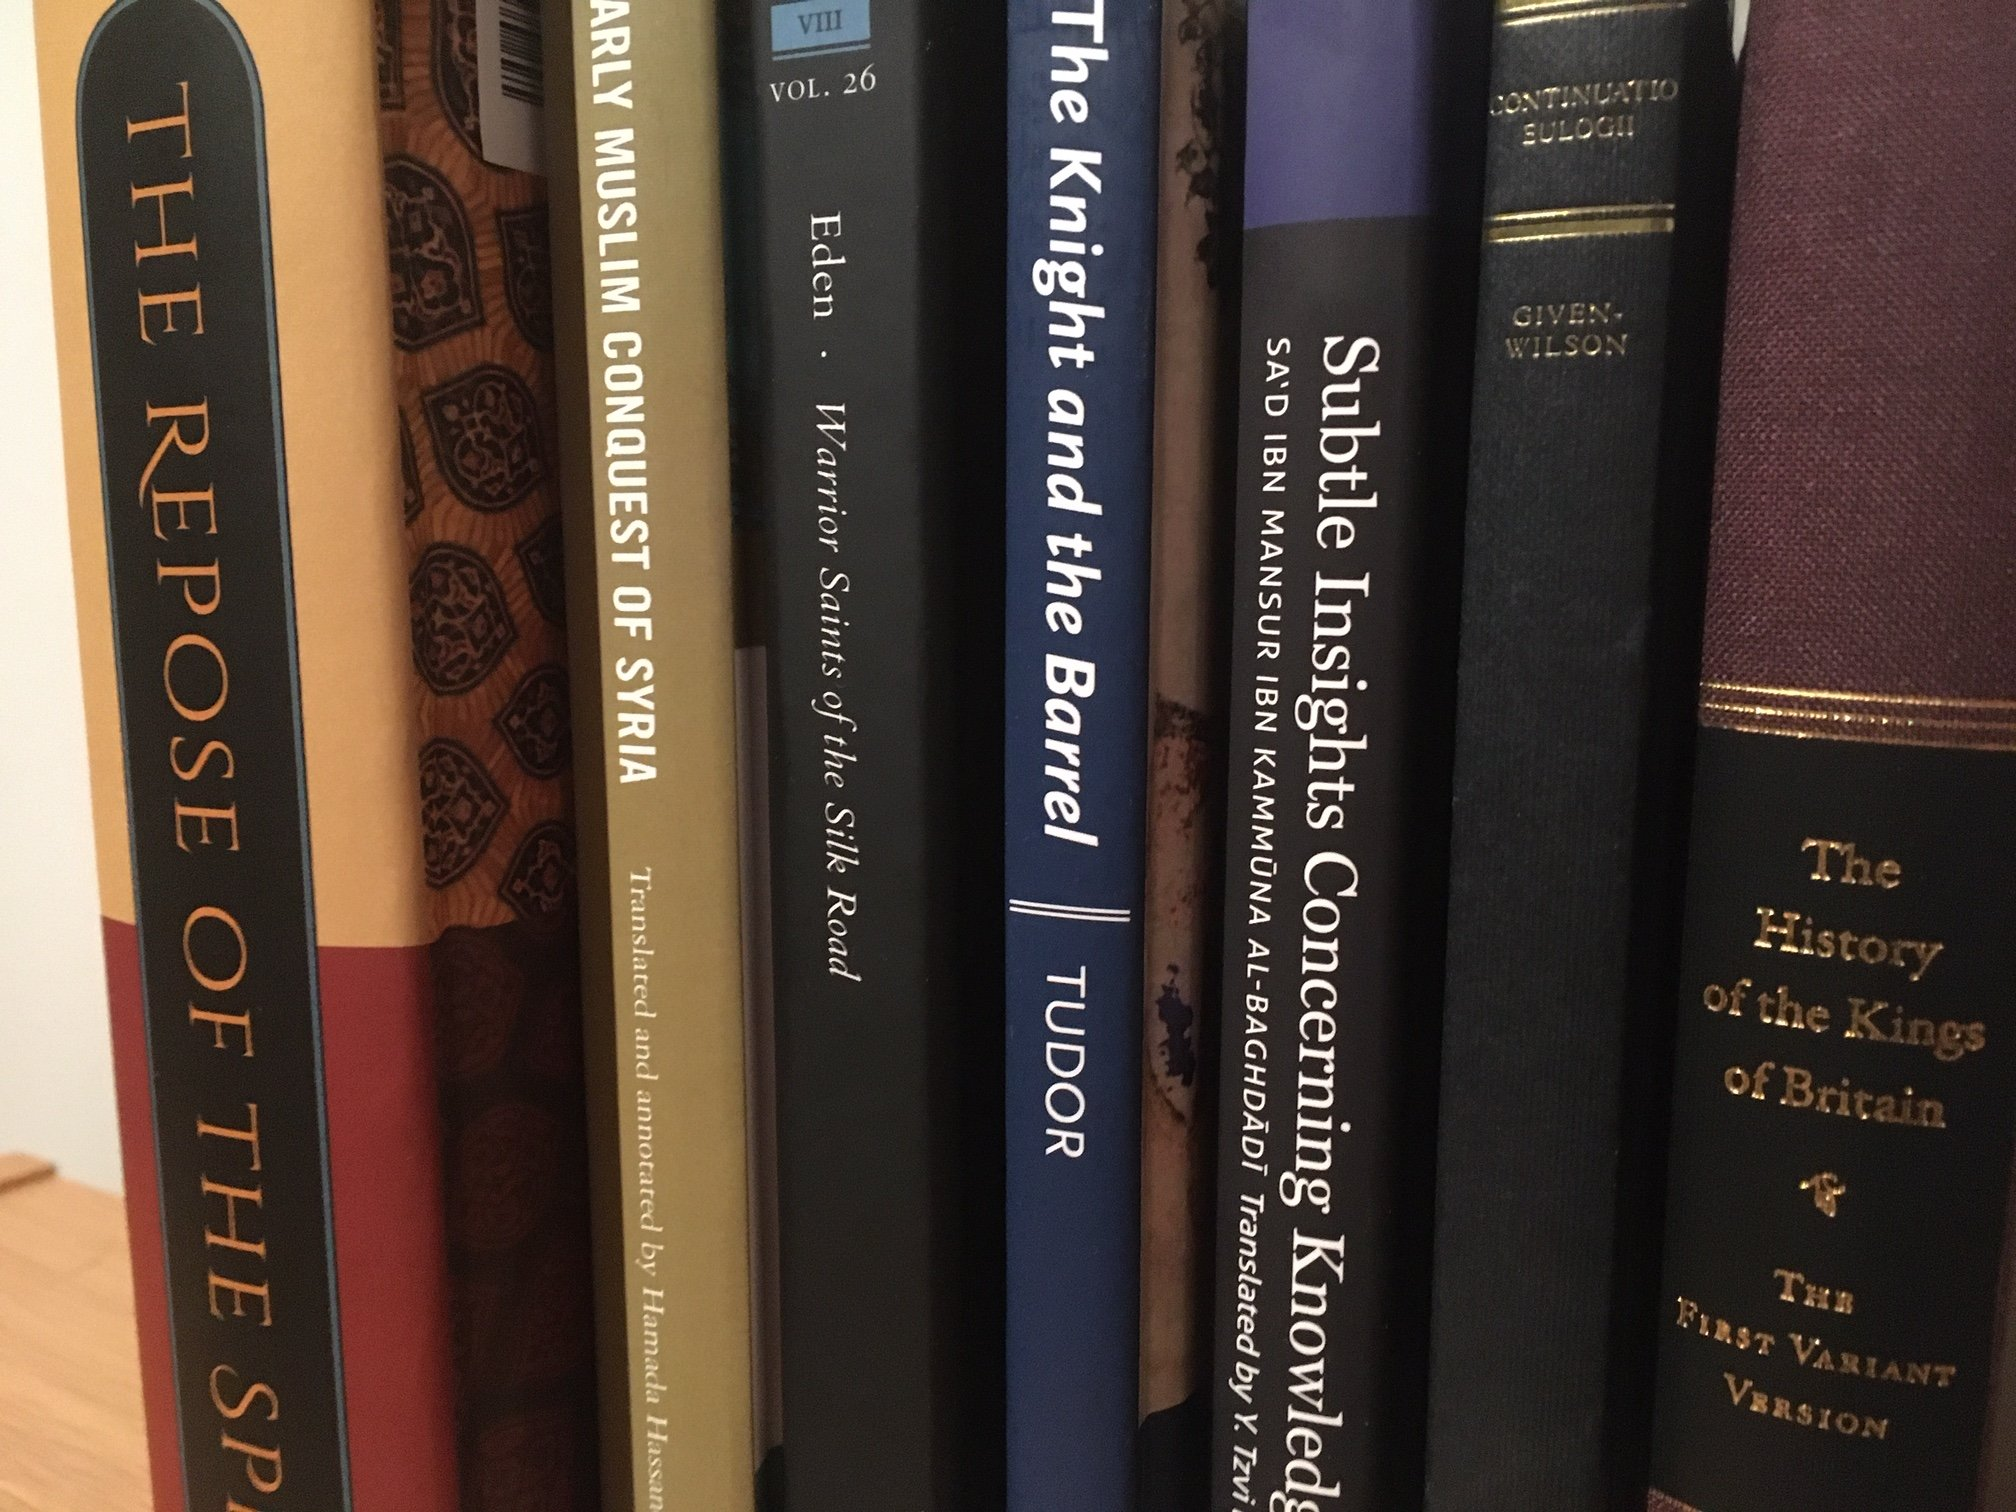 New Medieval Books: New Translations of Medieval Texts